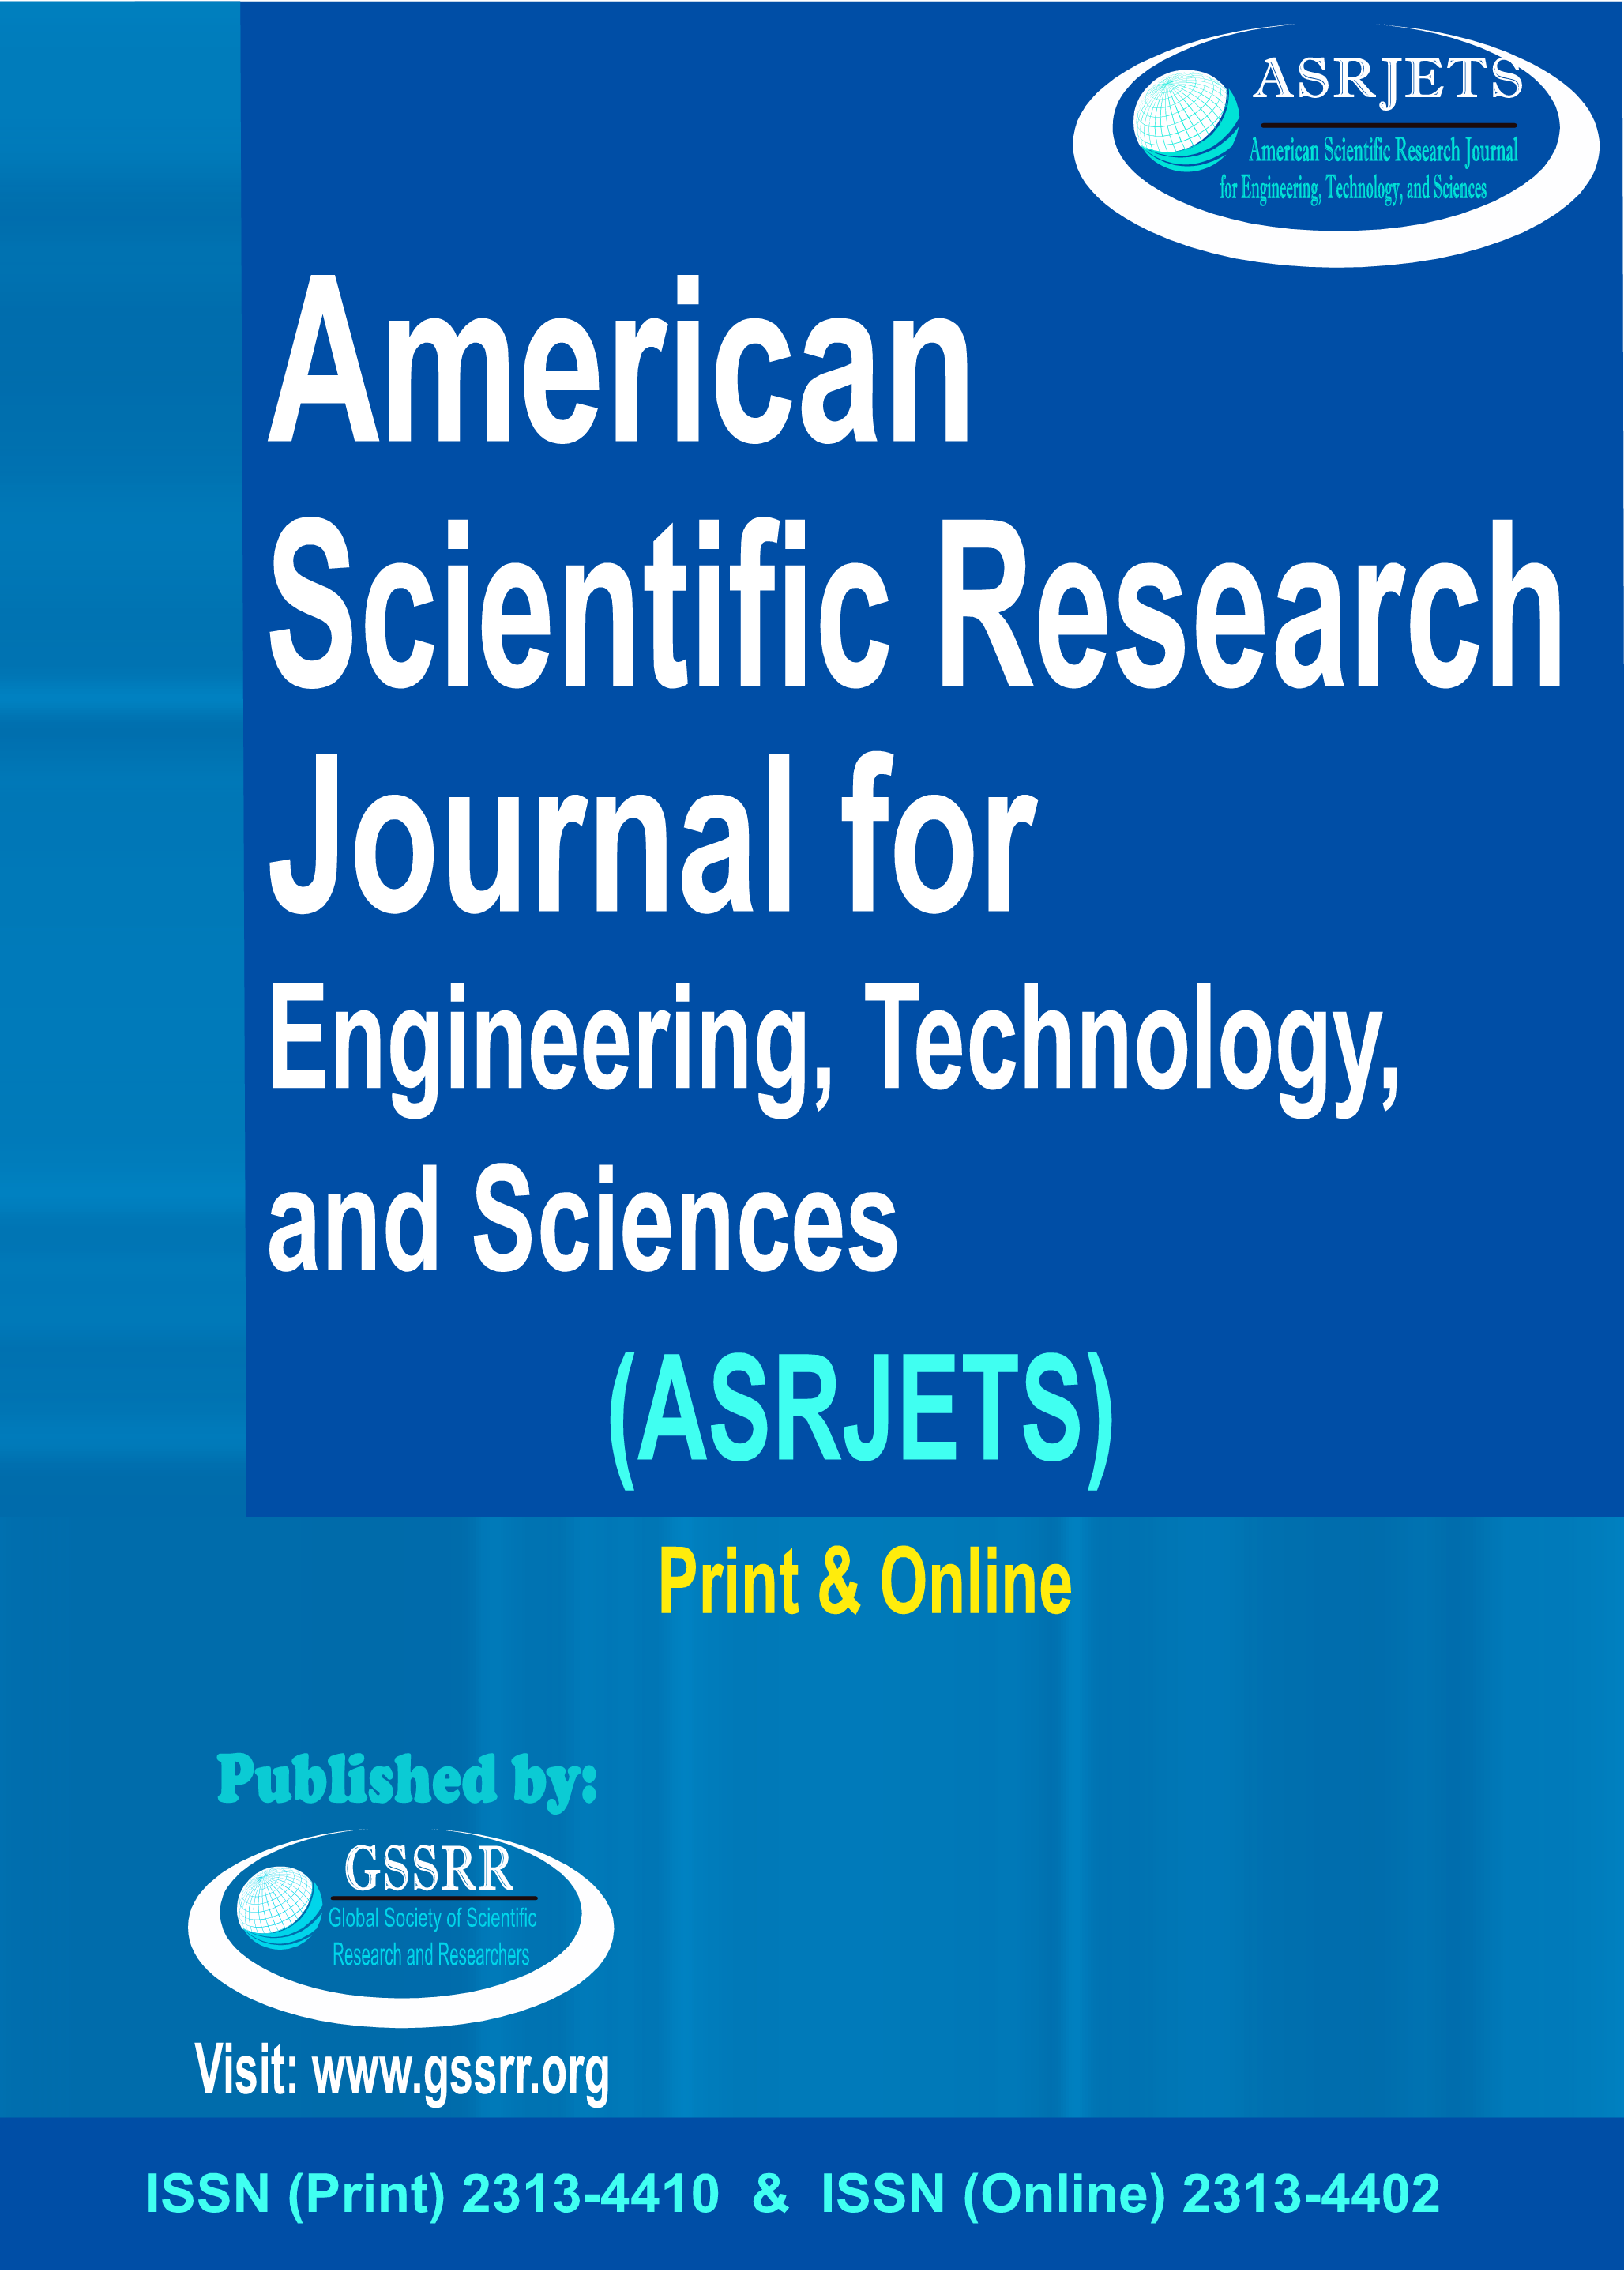 How do i get my paper published in a scientific journal?